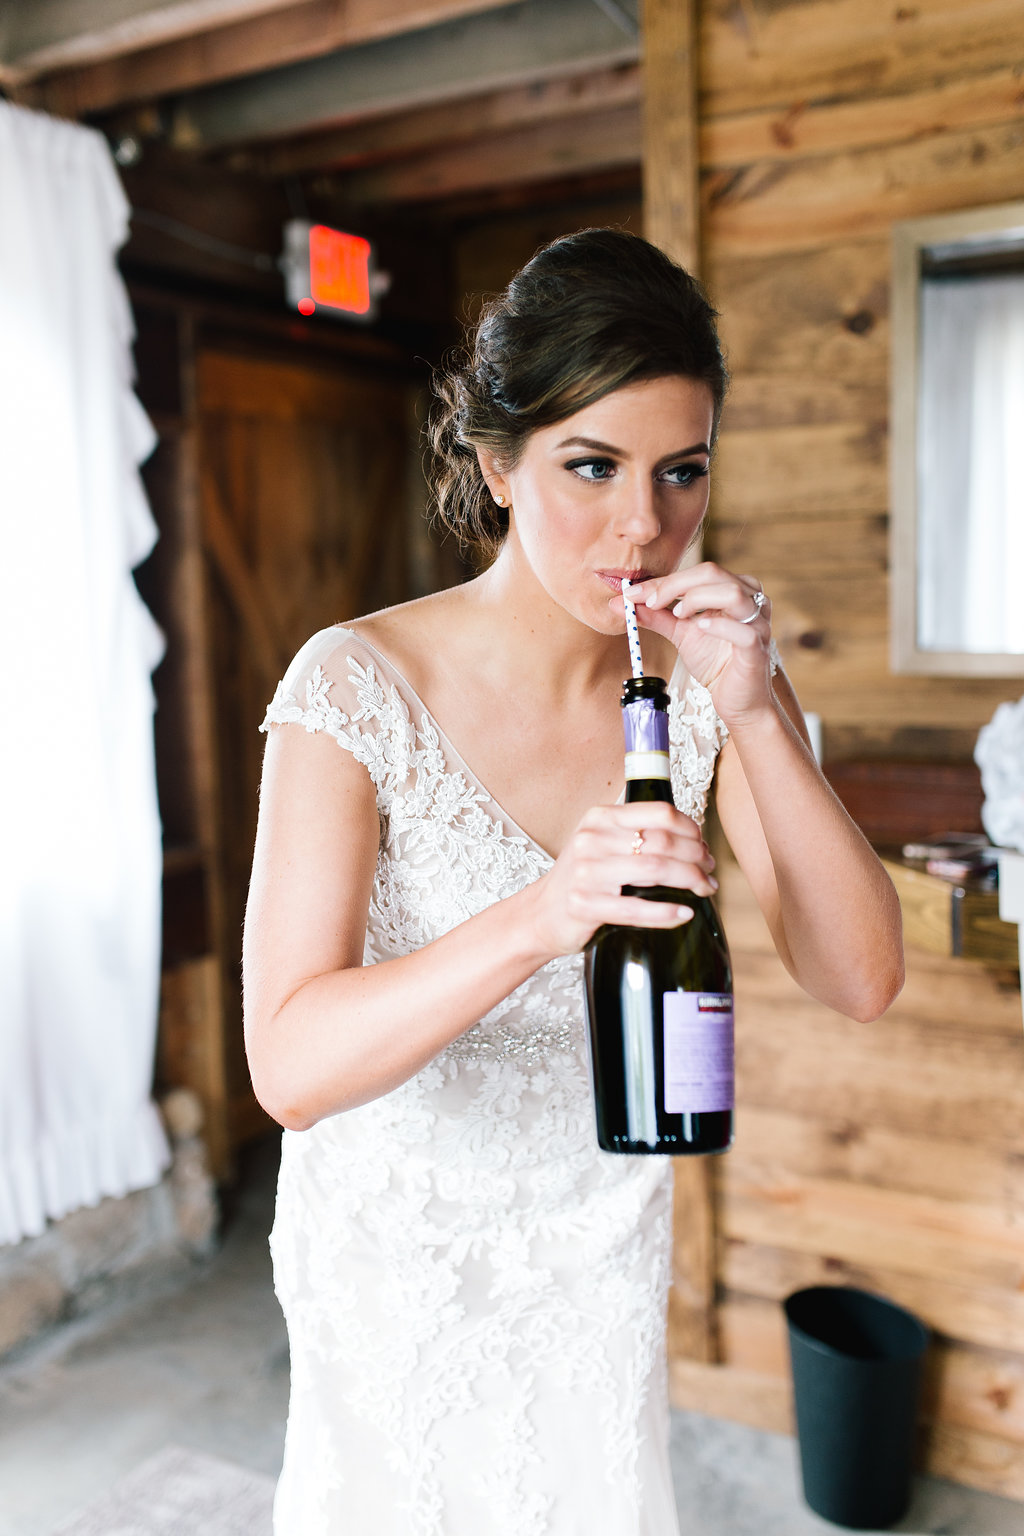 Jade + Seth Wedding | Allison Hopperstad Photography | Bloom Lake Barn | bride in cap sleeve lace dress | sipping champagne out of the bottle with a straw | Sixpence Events and Planning Day of Coordinating | A Vintage Touch wedding design and planning